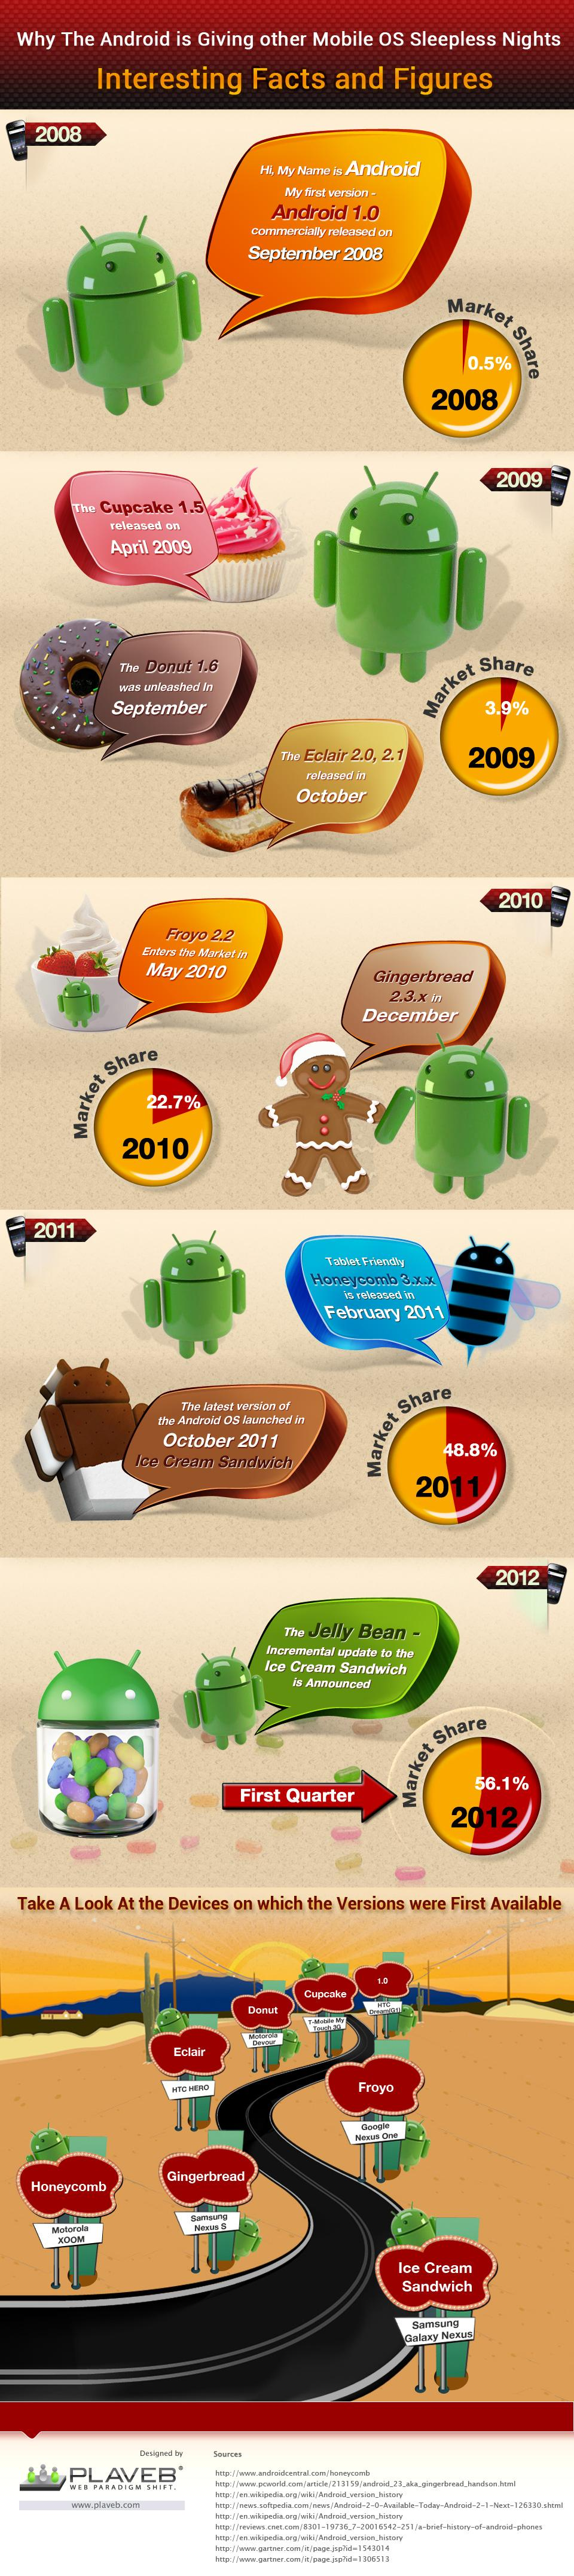 Android-Infographic.jpg (JPEG Image, 960x4310 pixels)